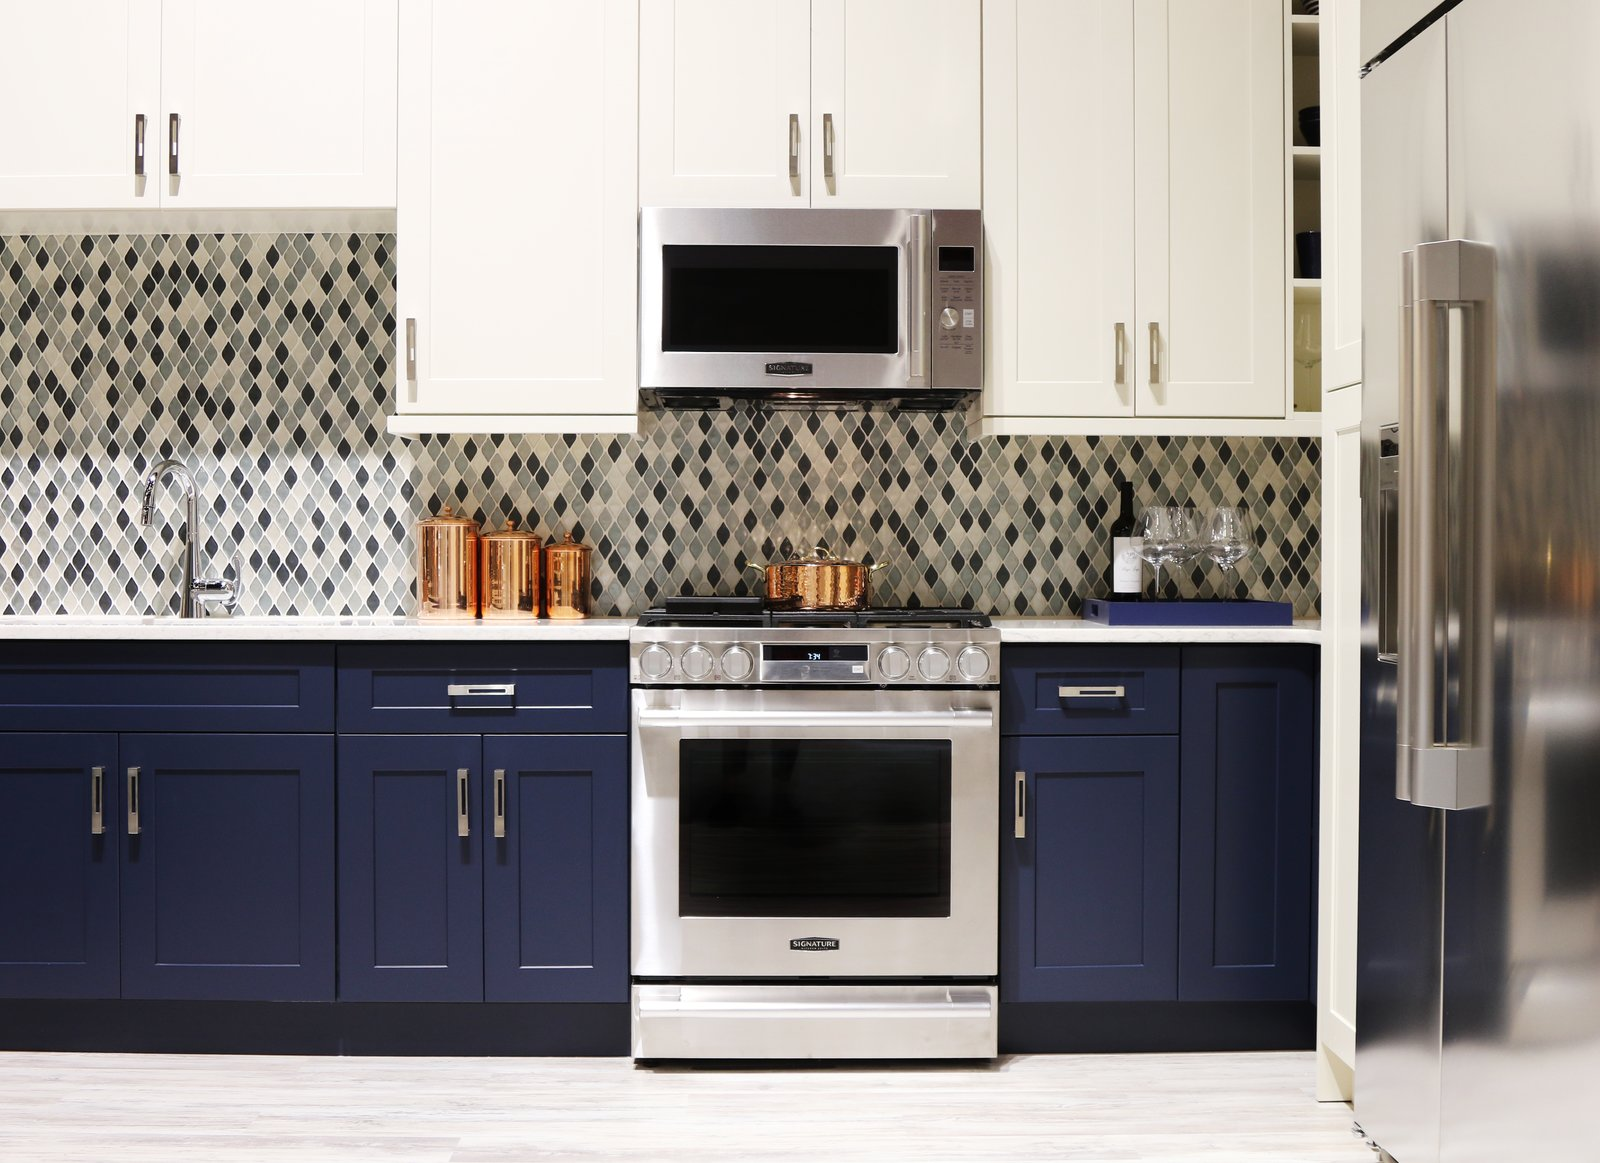 The Signature Kitchen Suite Smart Kitchen is outfitted with navy and ivory cabinets by Green Forest Cabinetry and a glass tile mosaic backsplash. For Fuller, who comes from a product design background, the